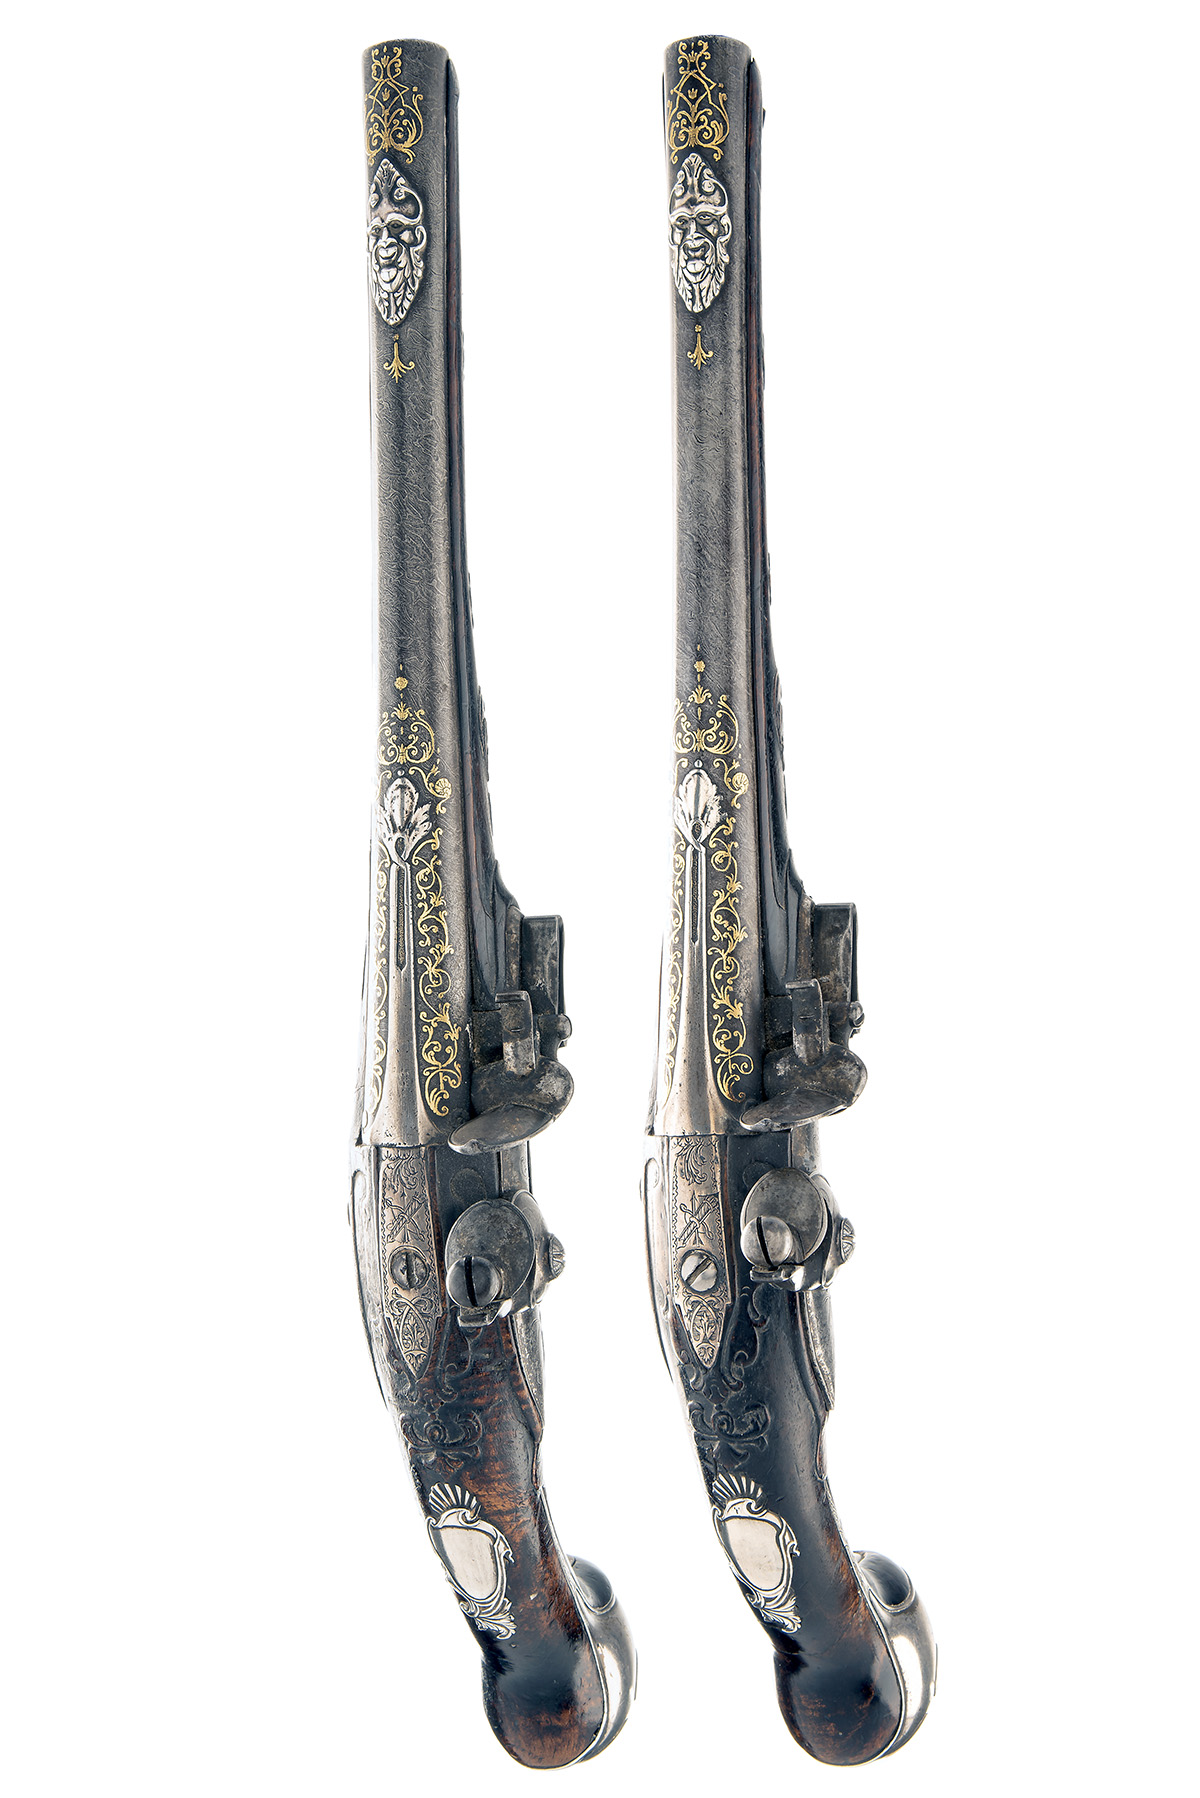 TULA ARSENAL, RUSSIA A MAGNIFICENT PAIR OF 16-BORE FLINTLOCK SILVER & GILT-MOUNTED HOLSTER - Image 3 of 6